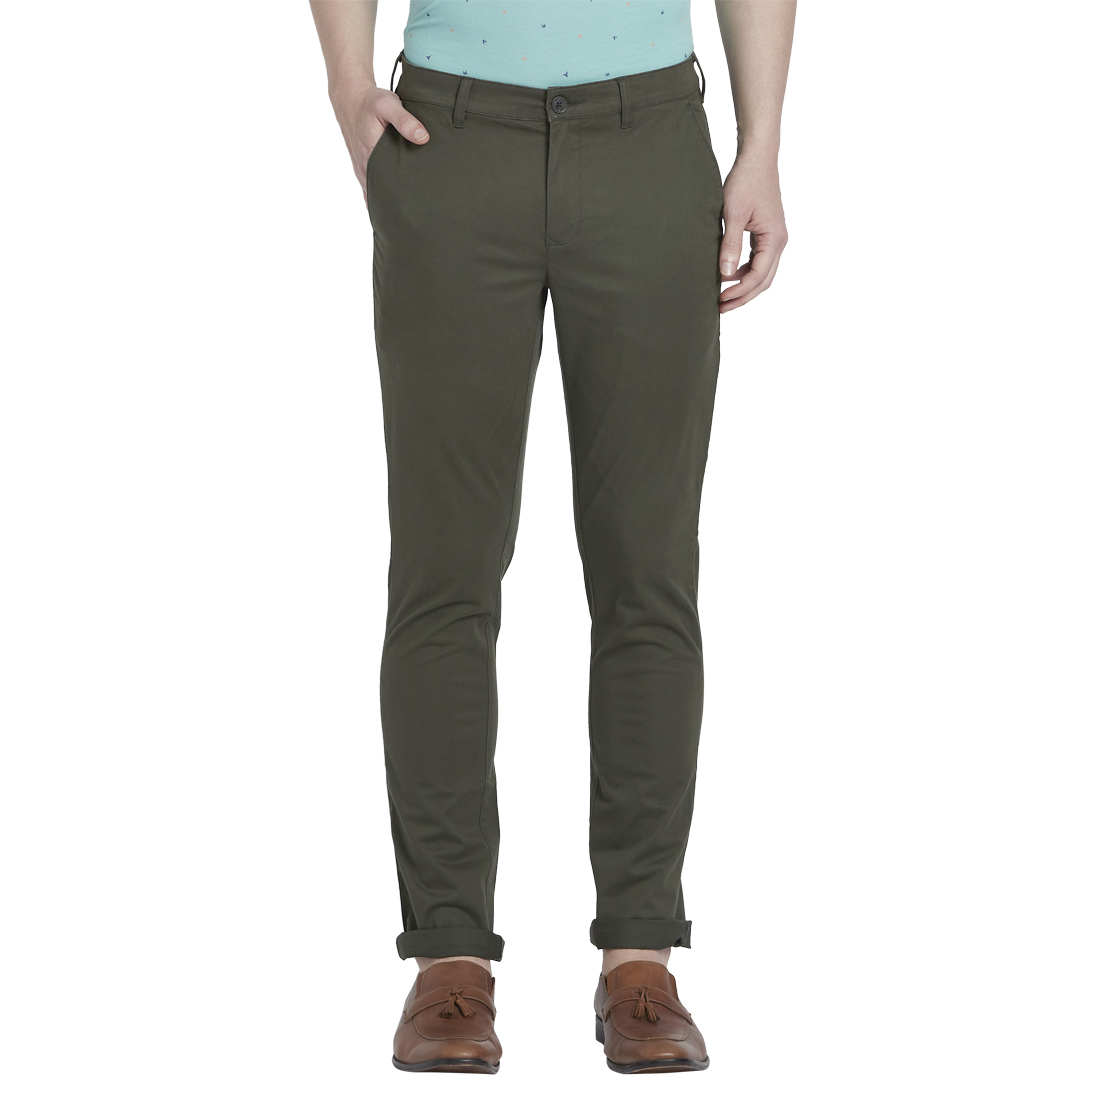 ColorPlus   ColorPlus Green Trousers